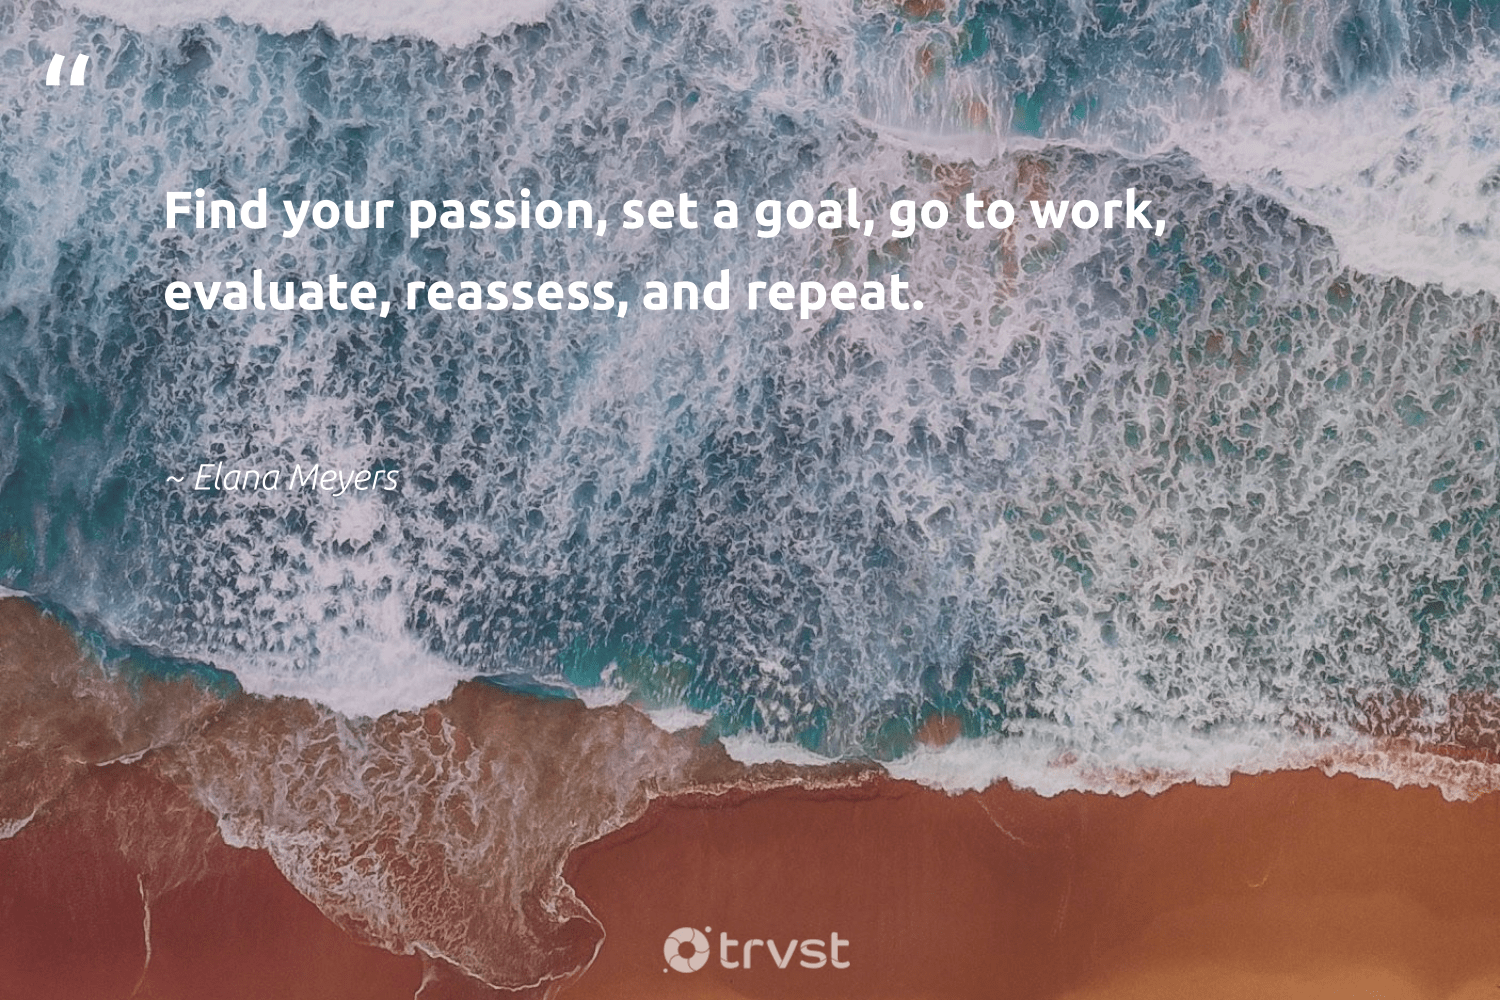 """""""Find your passion, set a goal, go to work, evaluate, reassess, and repeat.""""  - Elana Meyers #trvst #quotes #passion #futureofwork #thinkgreen #softskills #planetearthfirst #begreat #bethechange #nevergiveup #takeaction #beinspired"""